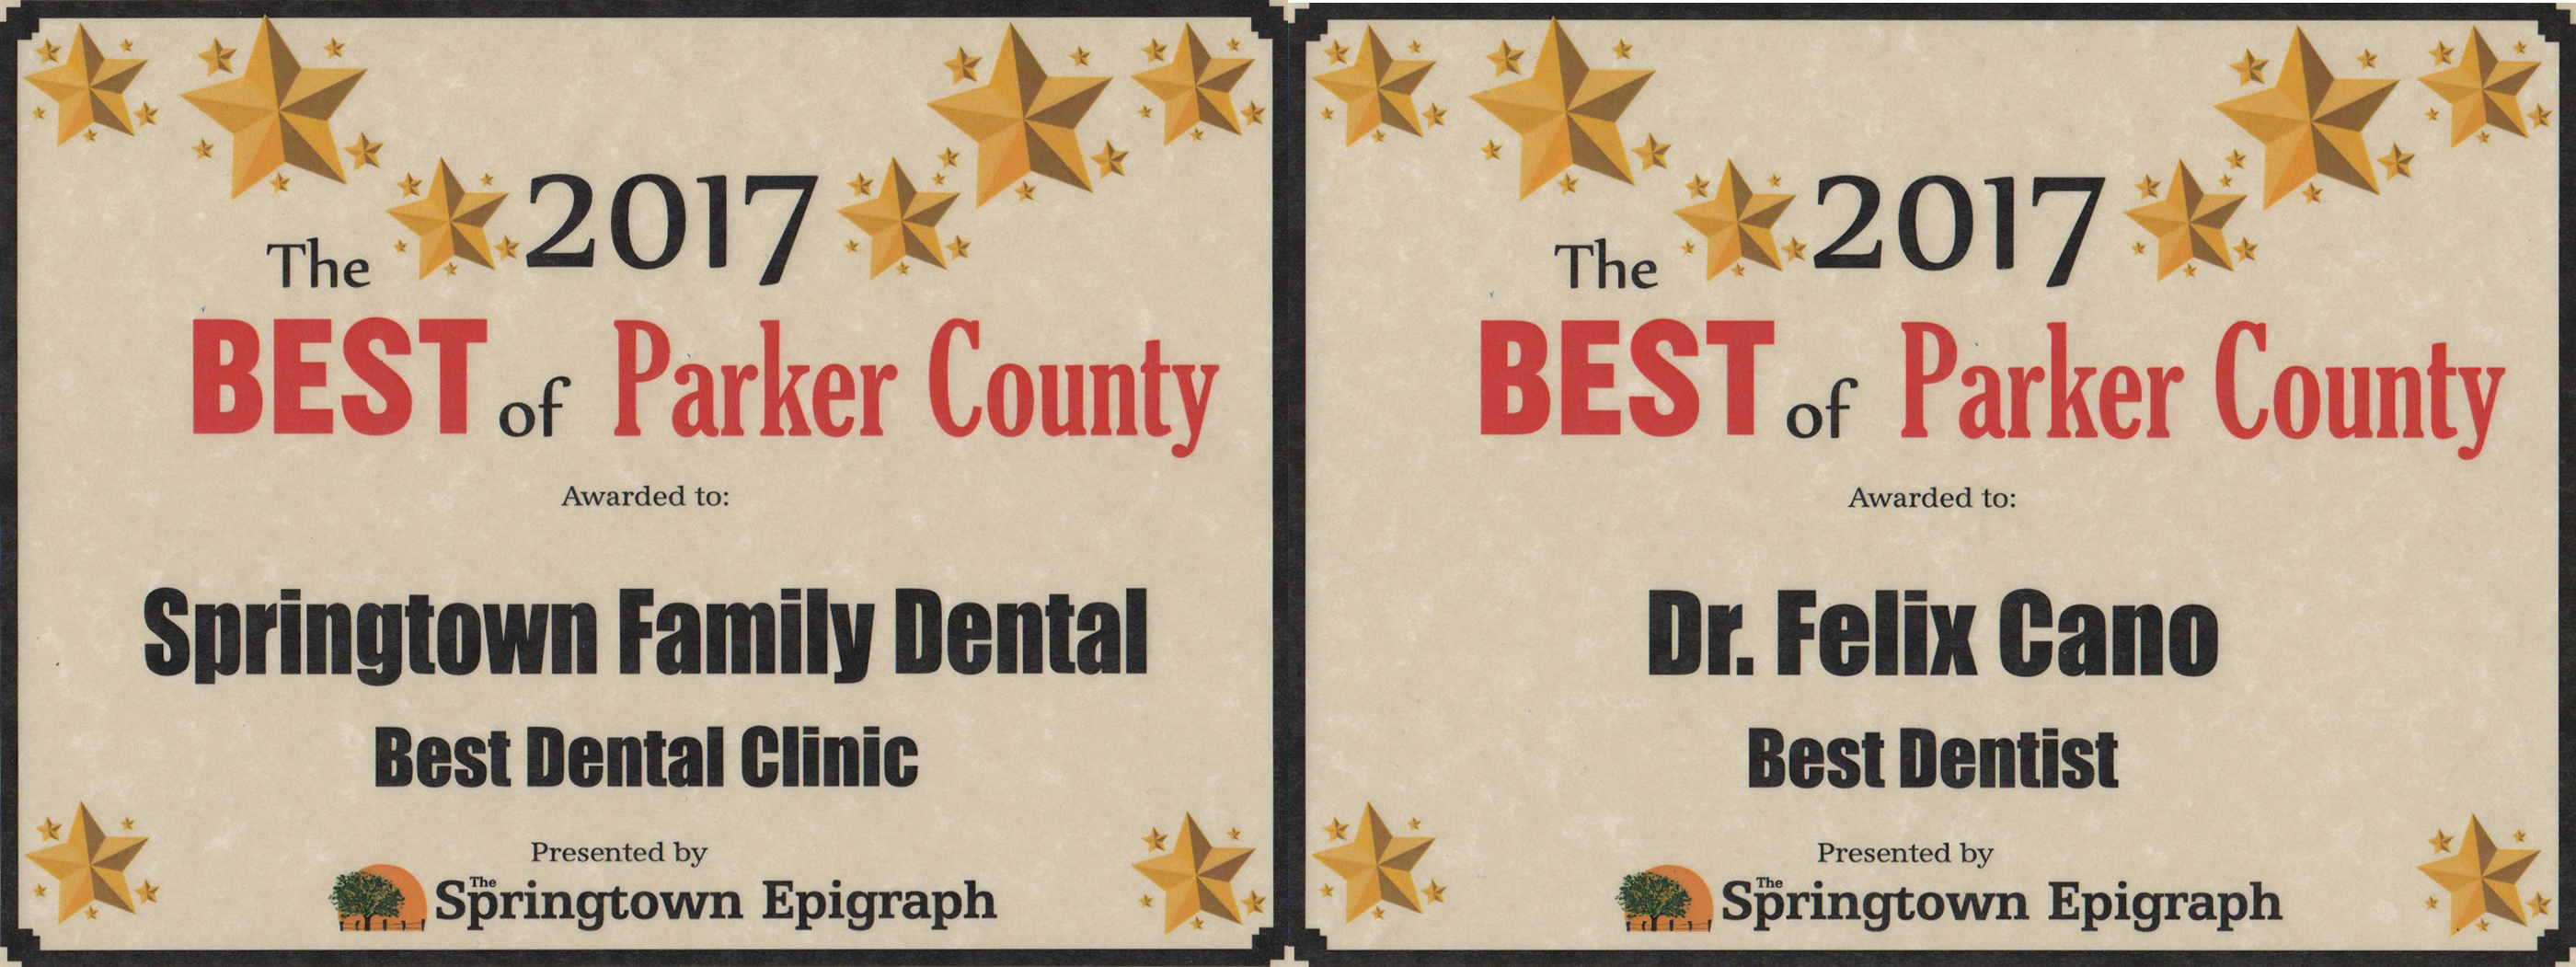 2017 Best of Awards: Springtown Family Dental Voted BEST Dental Clinic and BEST Dentist!